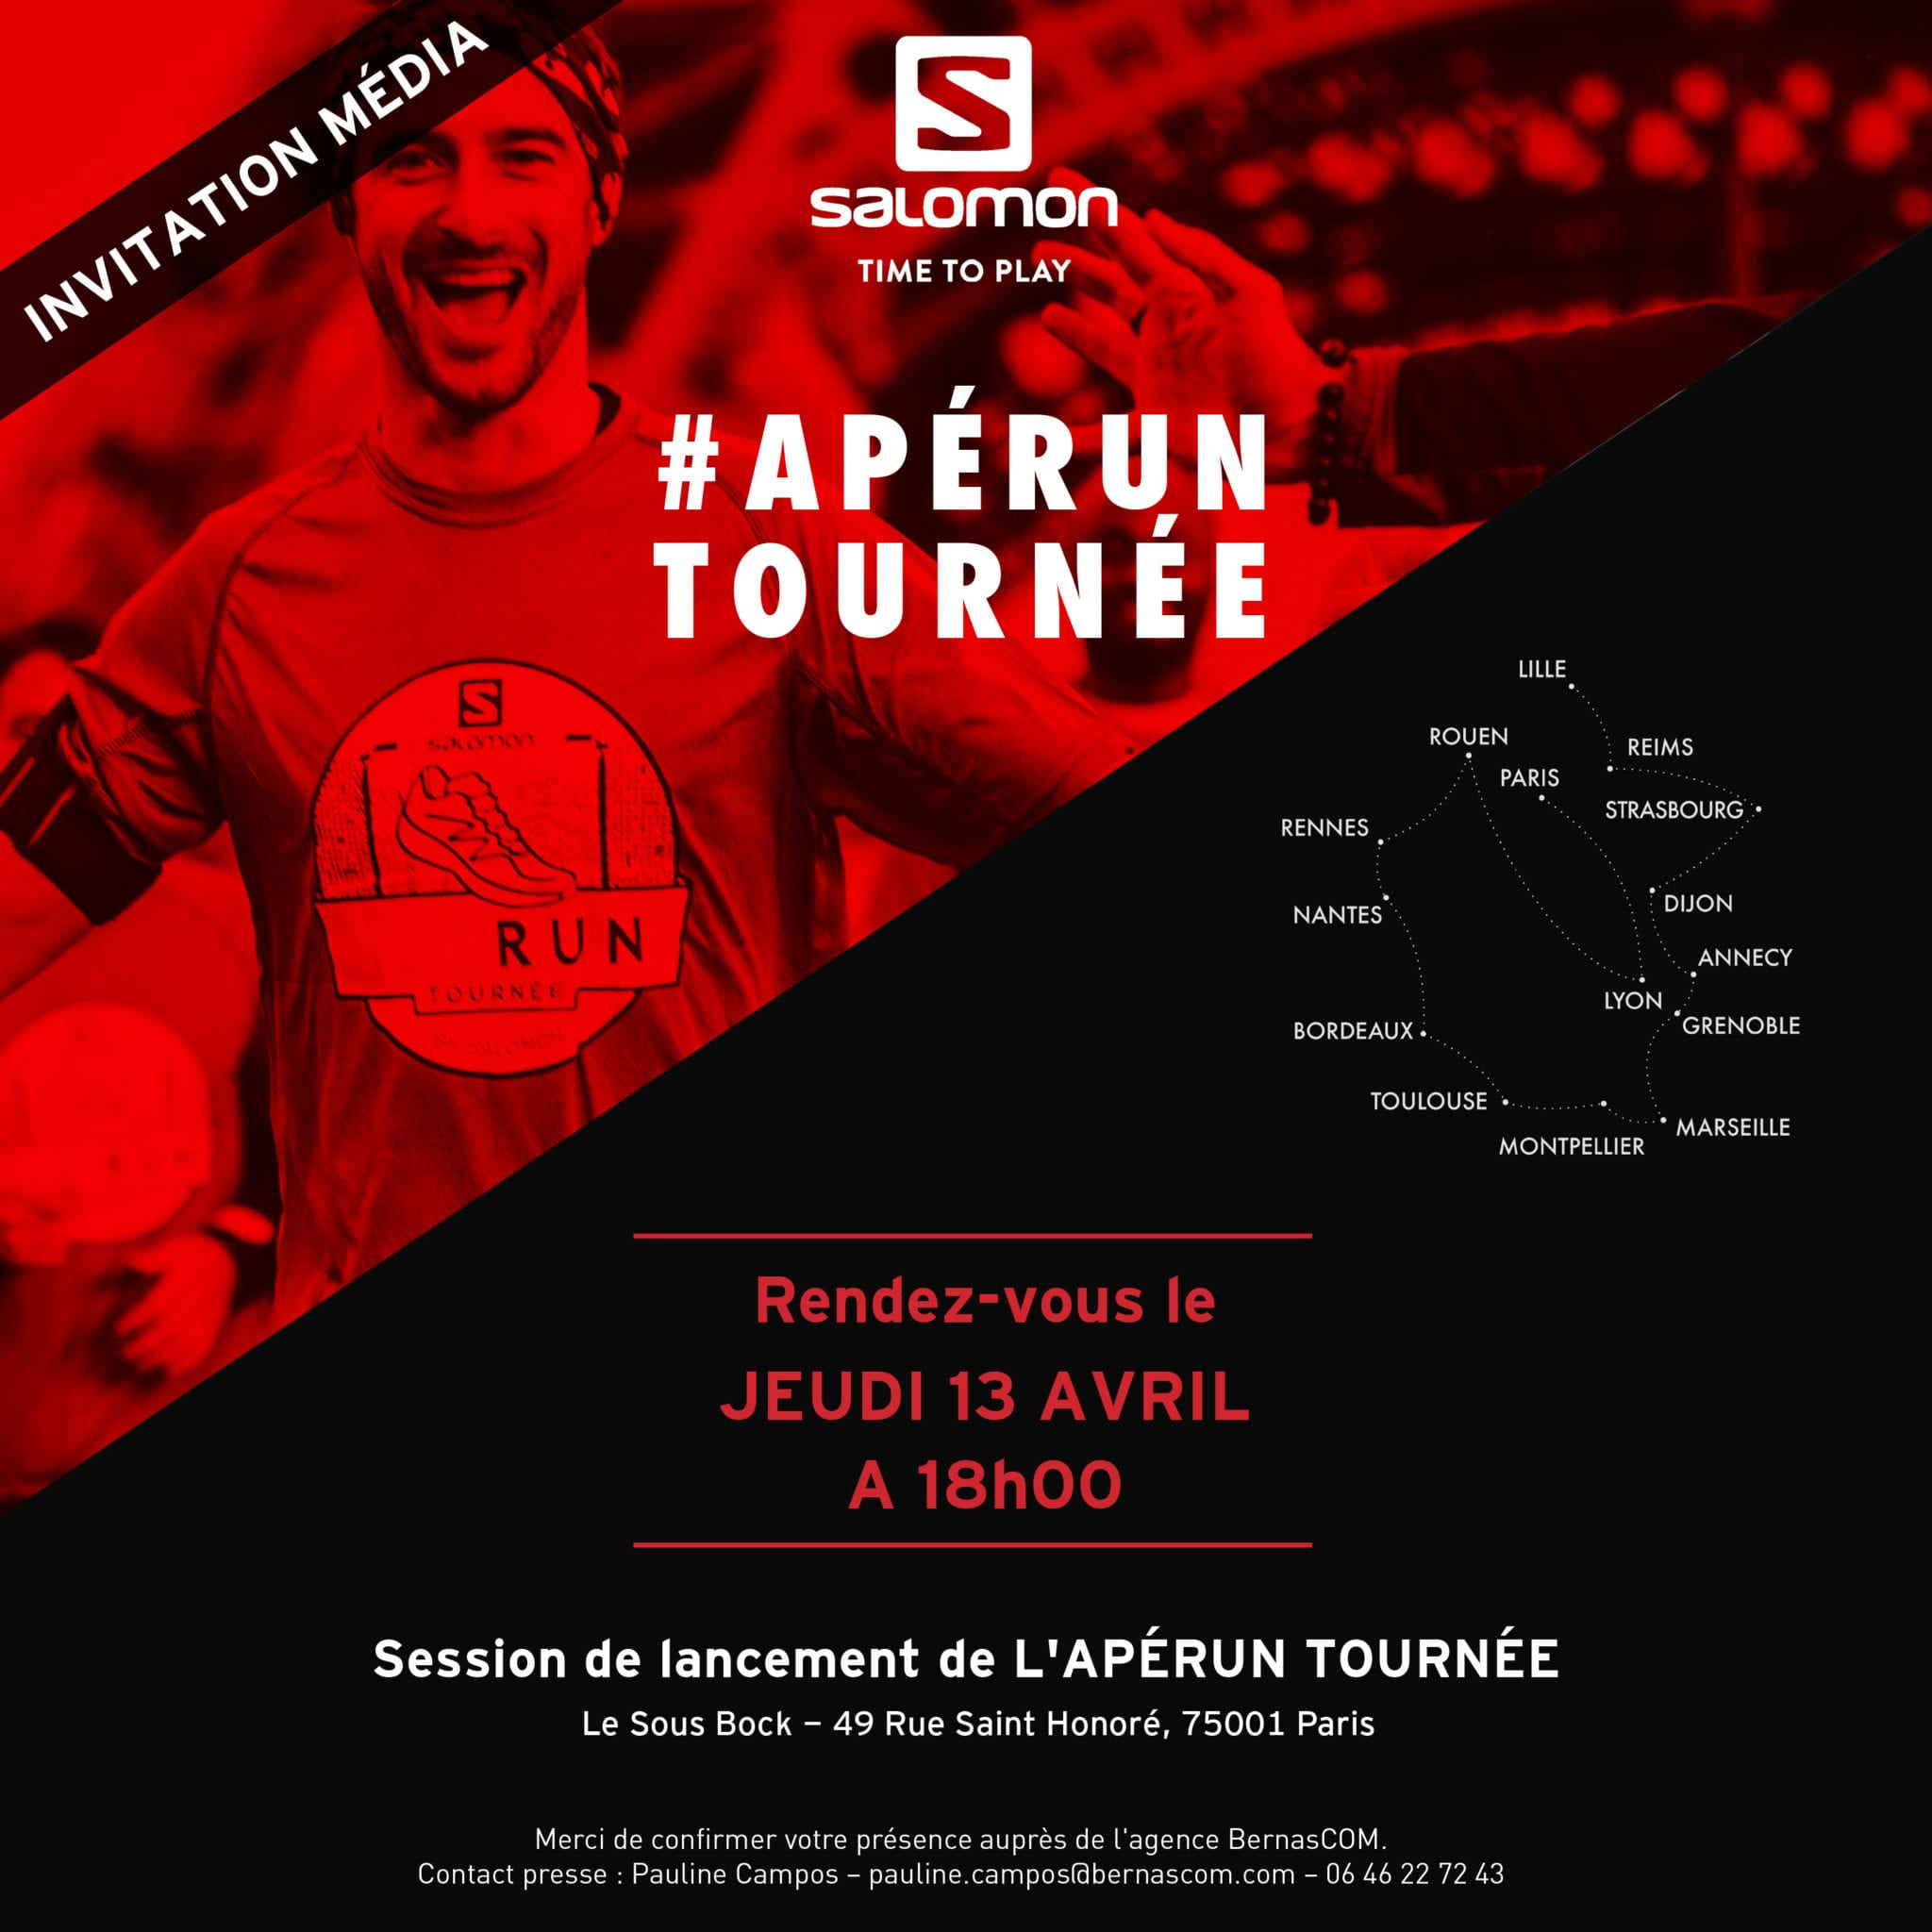 Apérun Tournée Salomon 2017 invitation